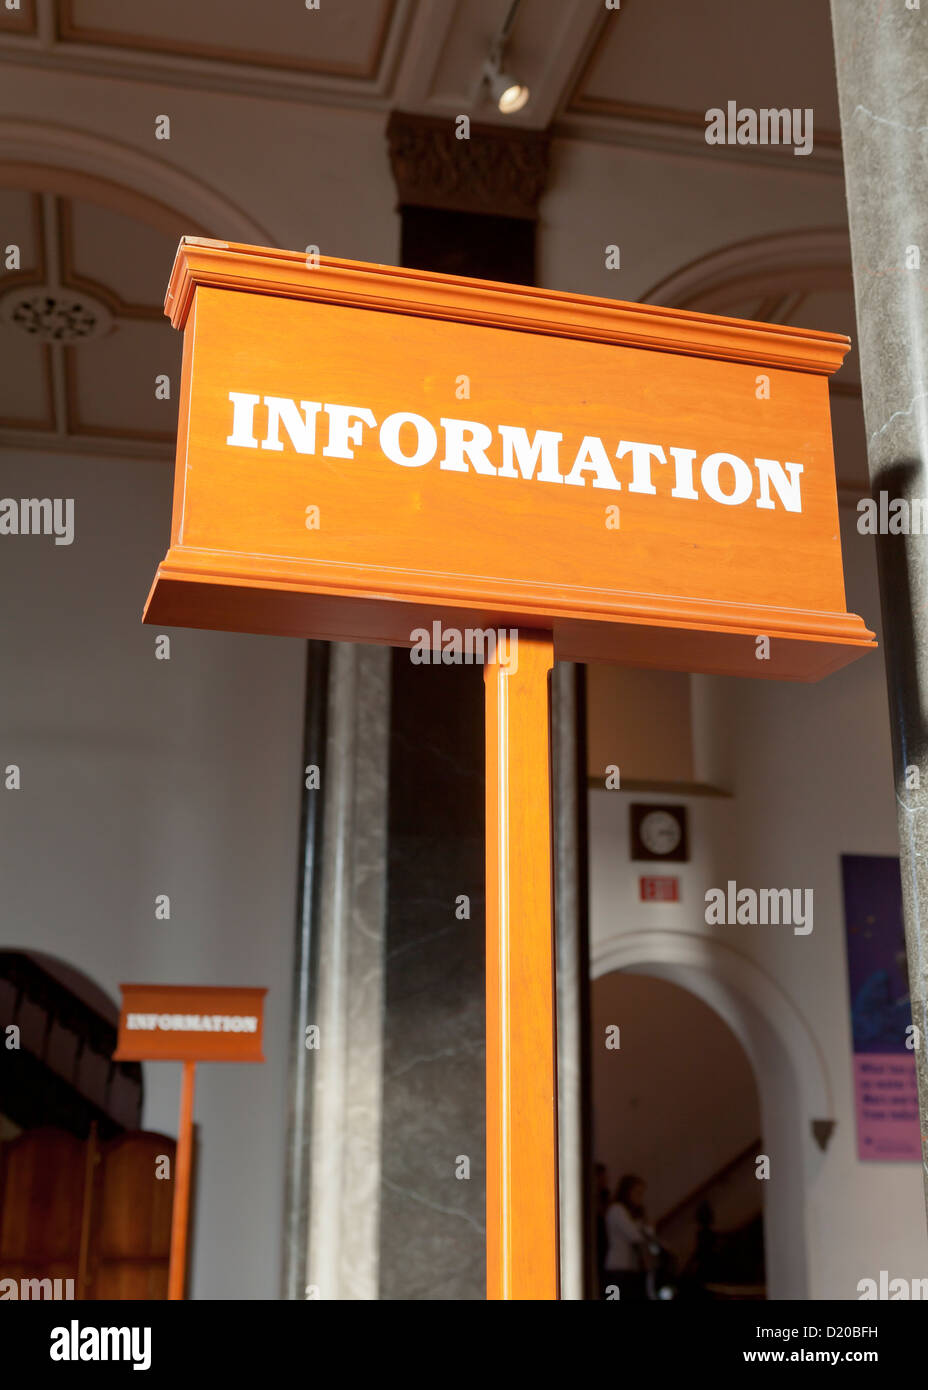 Bureau d'information sign Photo Stock